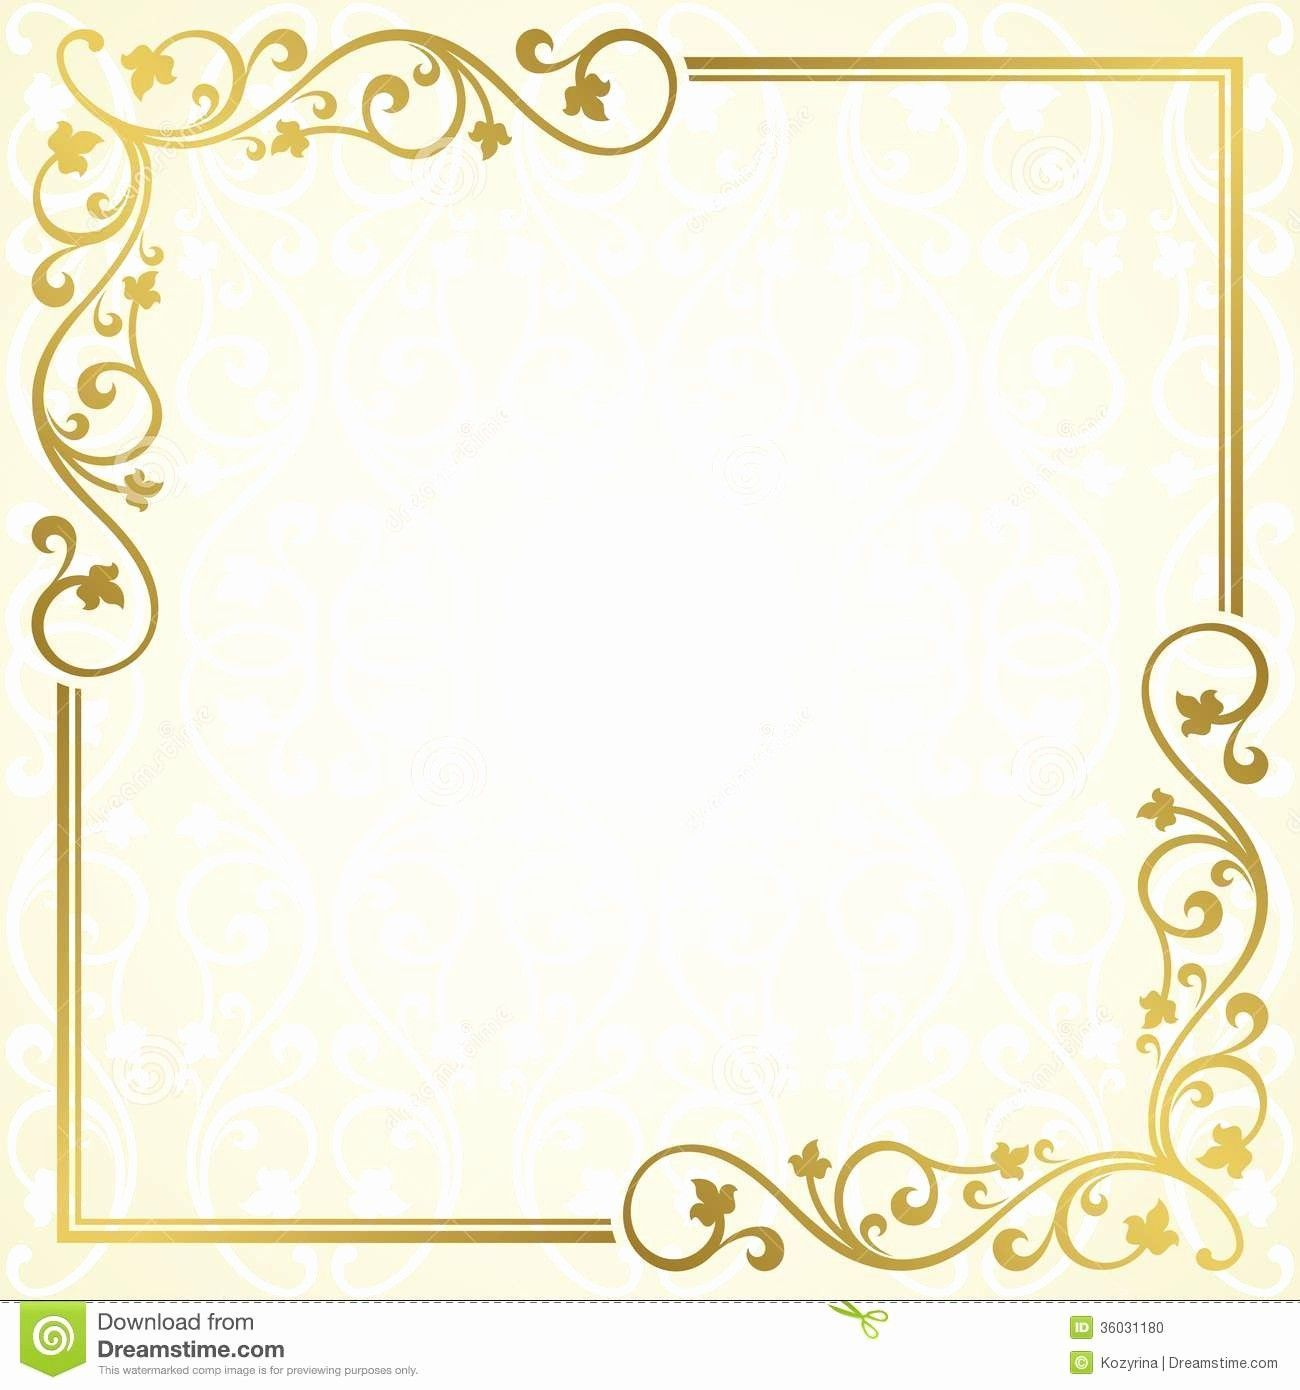 004 Remarkable Free Download Invitation Card Template Design  Templates Indian Wedding Software PngFull